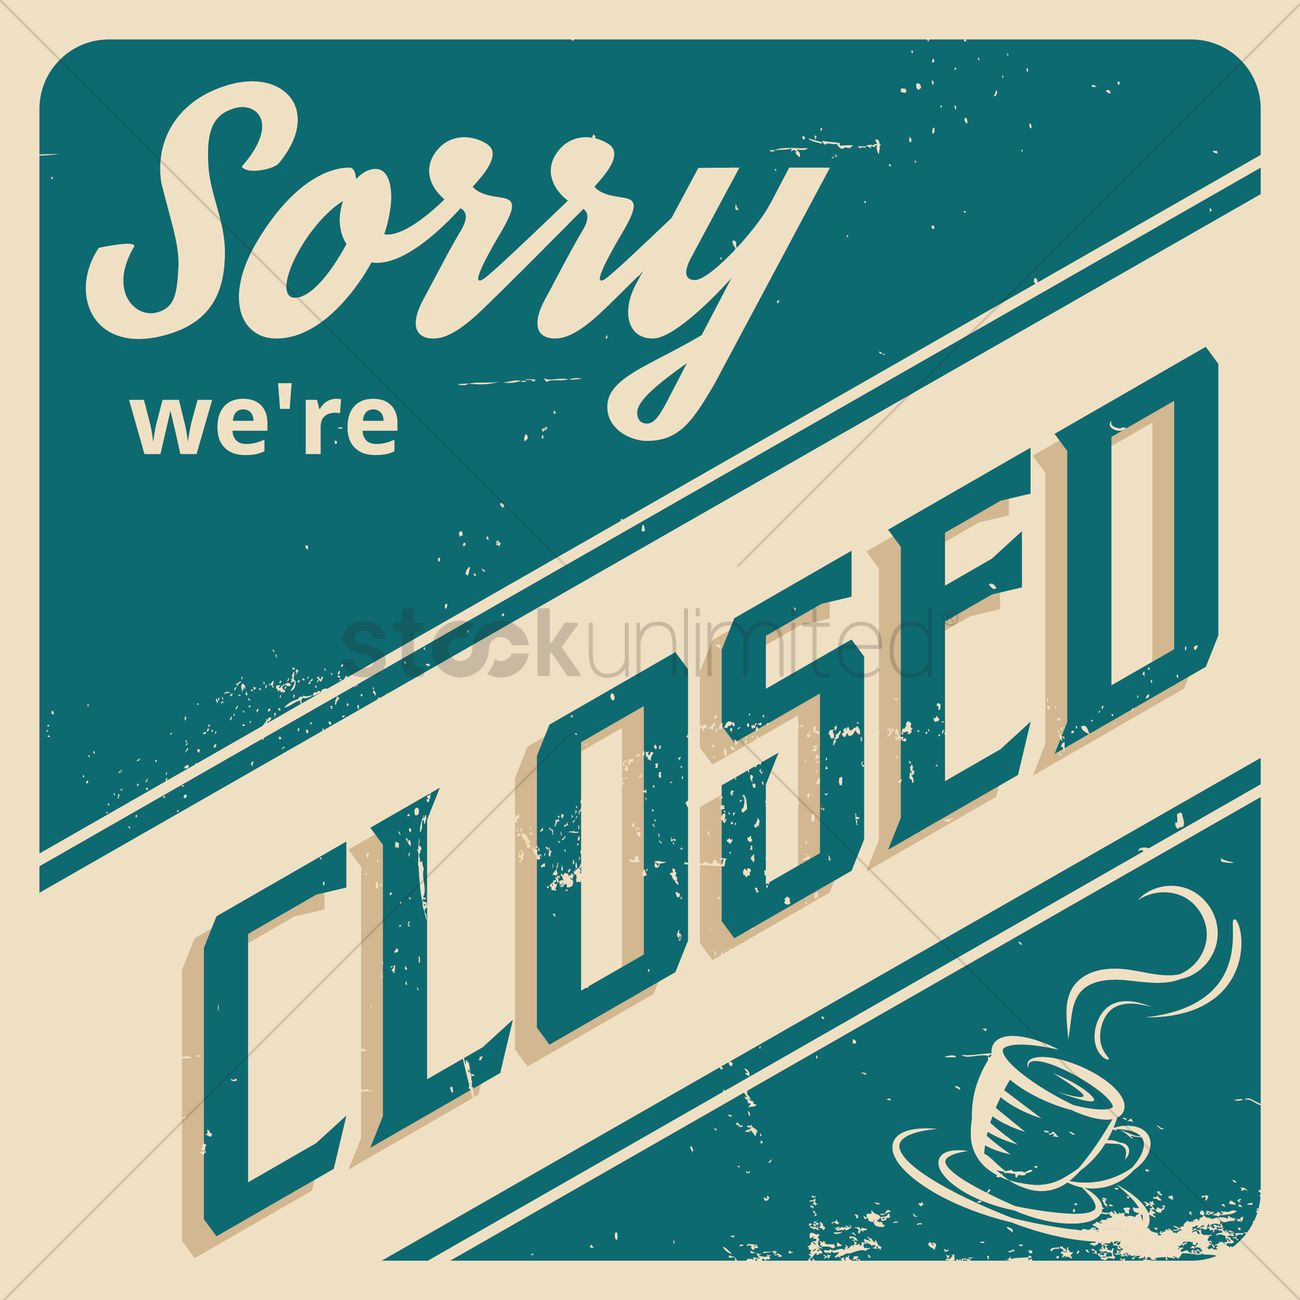 Sorry We're Closed Wallpaper Vector Image